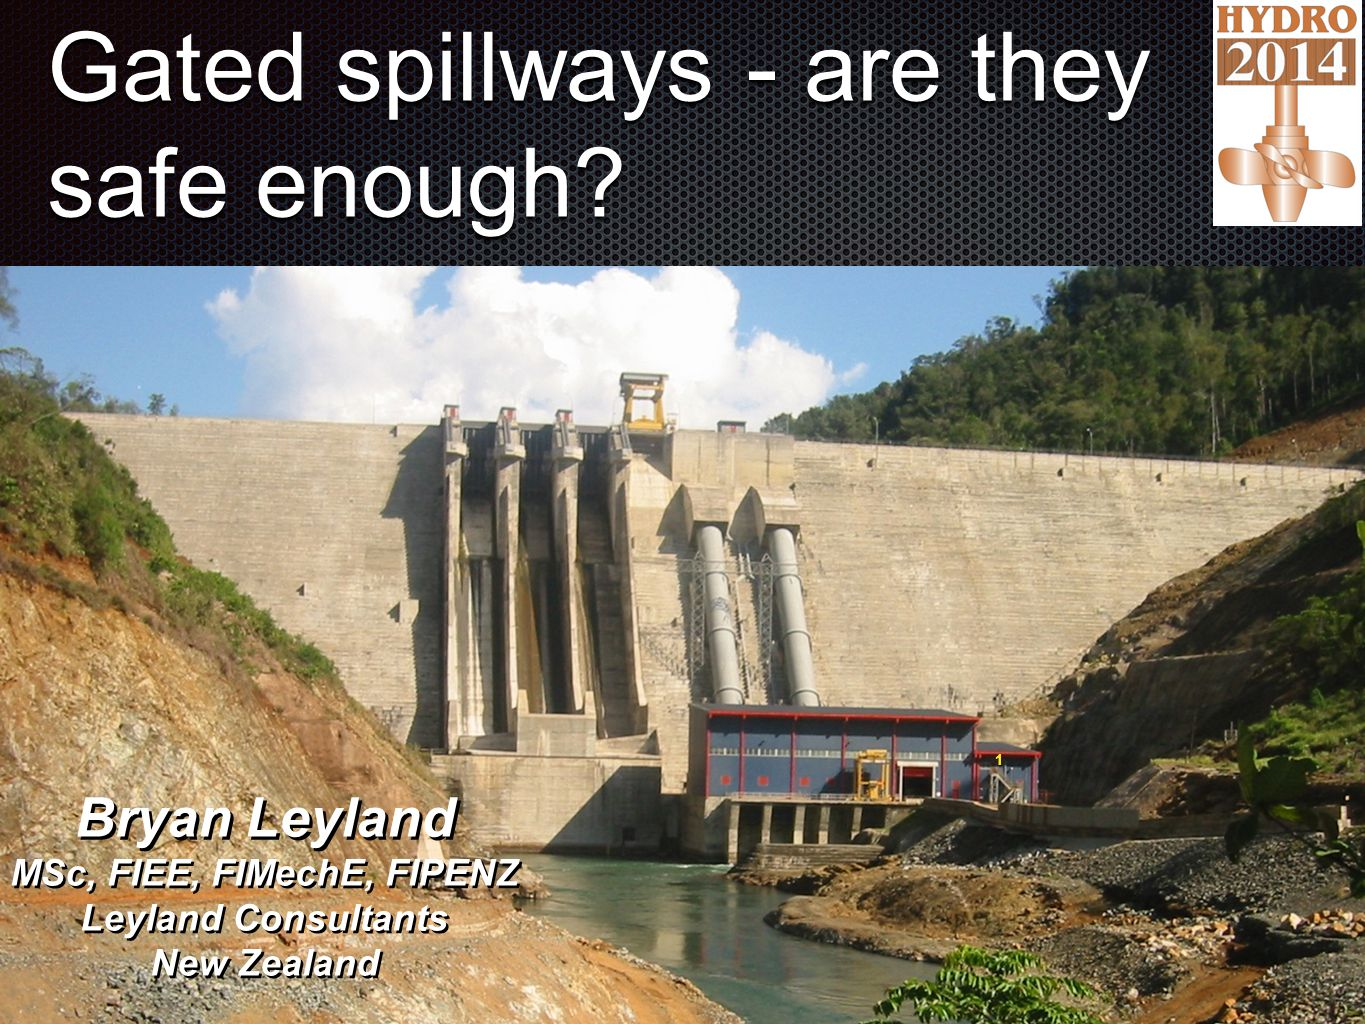 Gated spillways - are they safe enough?.,, 1 Bryan Leyland MSc, FIEE, FIMechE, FIPENZ Leyland Consultants New Zealand